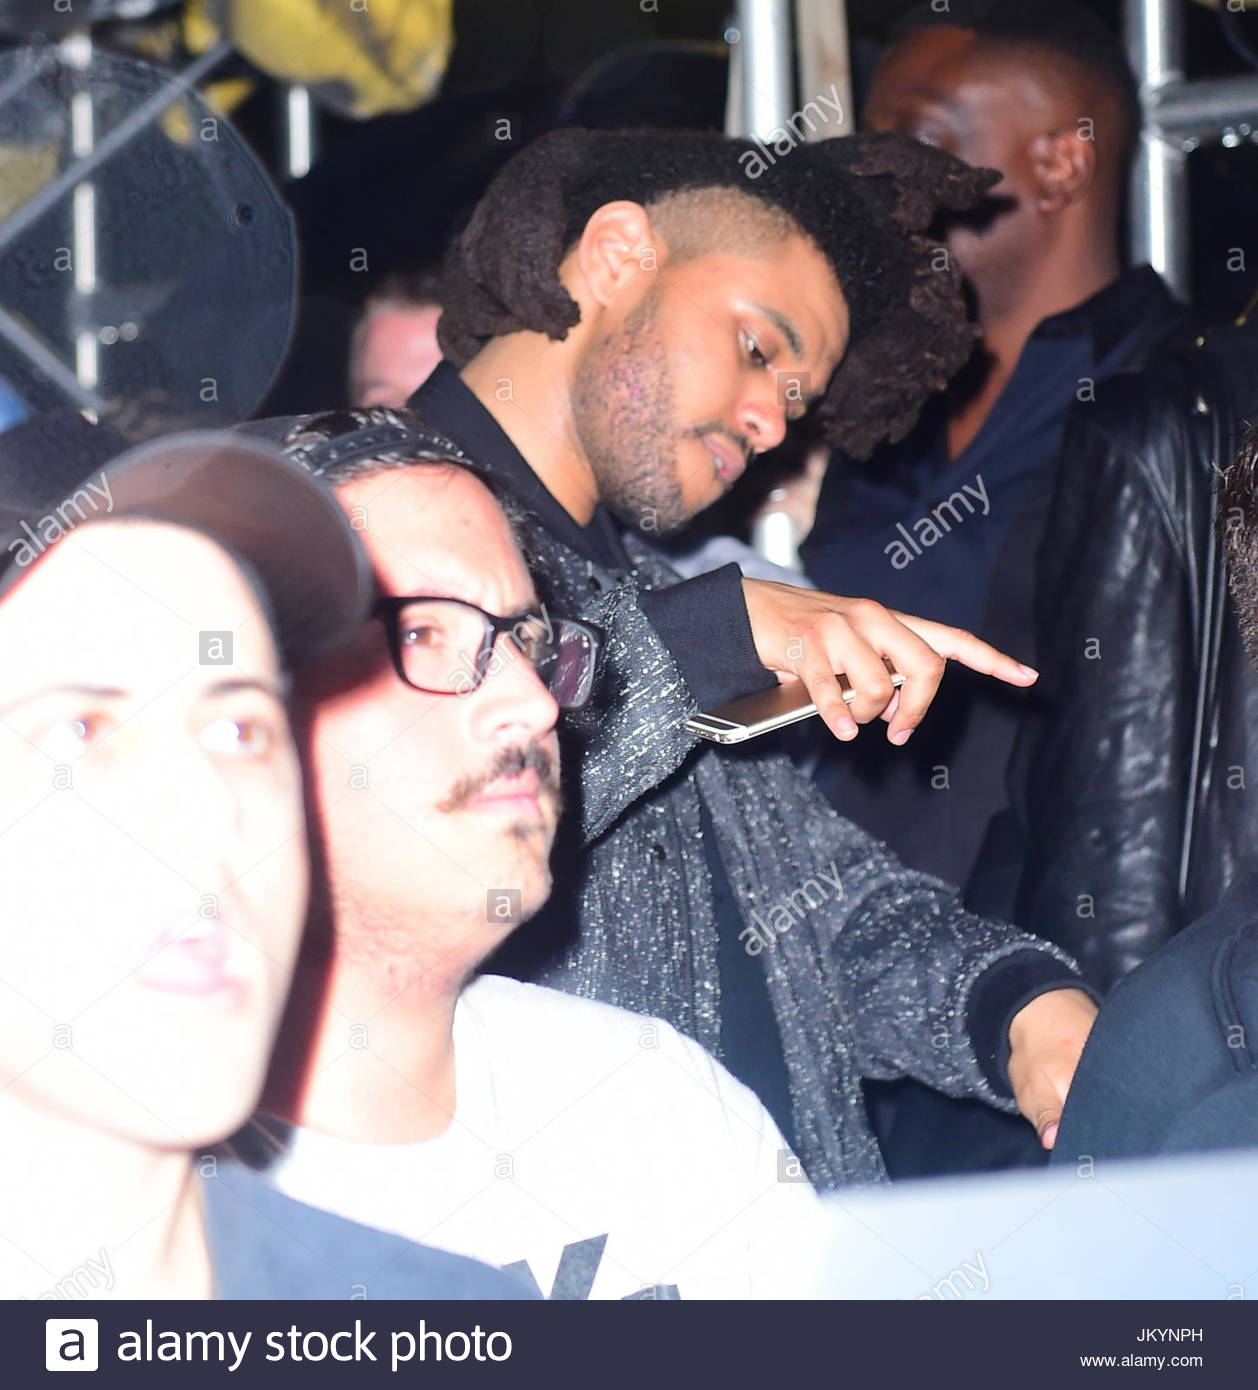 Pictures of wiz khalifa pictures of celebrities - Celebrities From All Over Came To Watch A Surprise Performance At Rihanna S Roc Nation Puma Block Party Rihanna The Weeknd Wiz Khalifa Timbaland